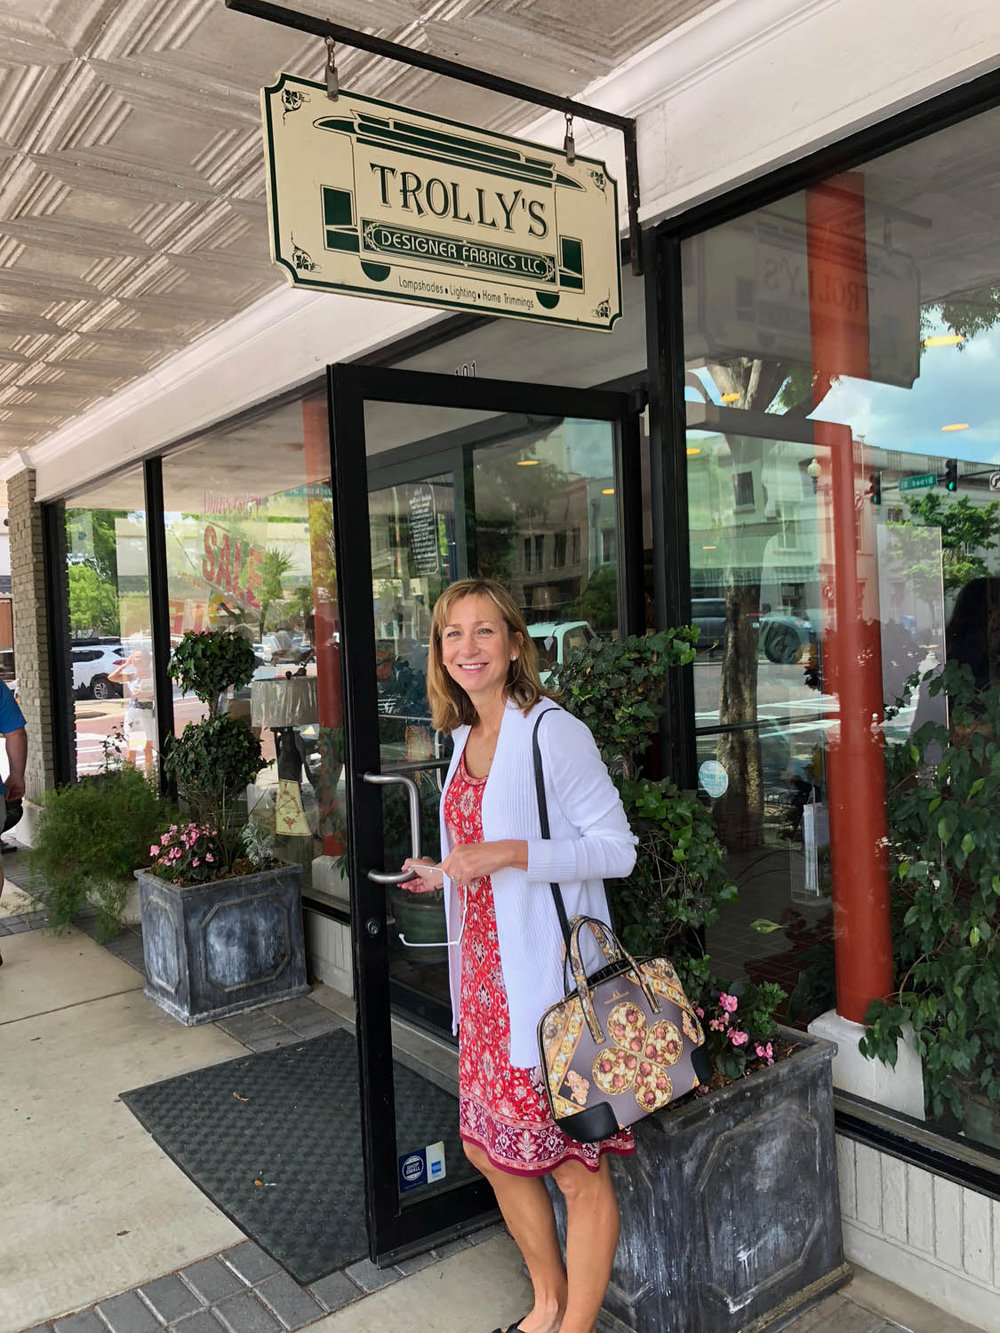 Ashley at the store entrance of Trolly's Designer Fabrics, LLC